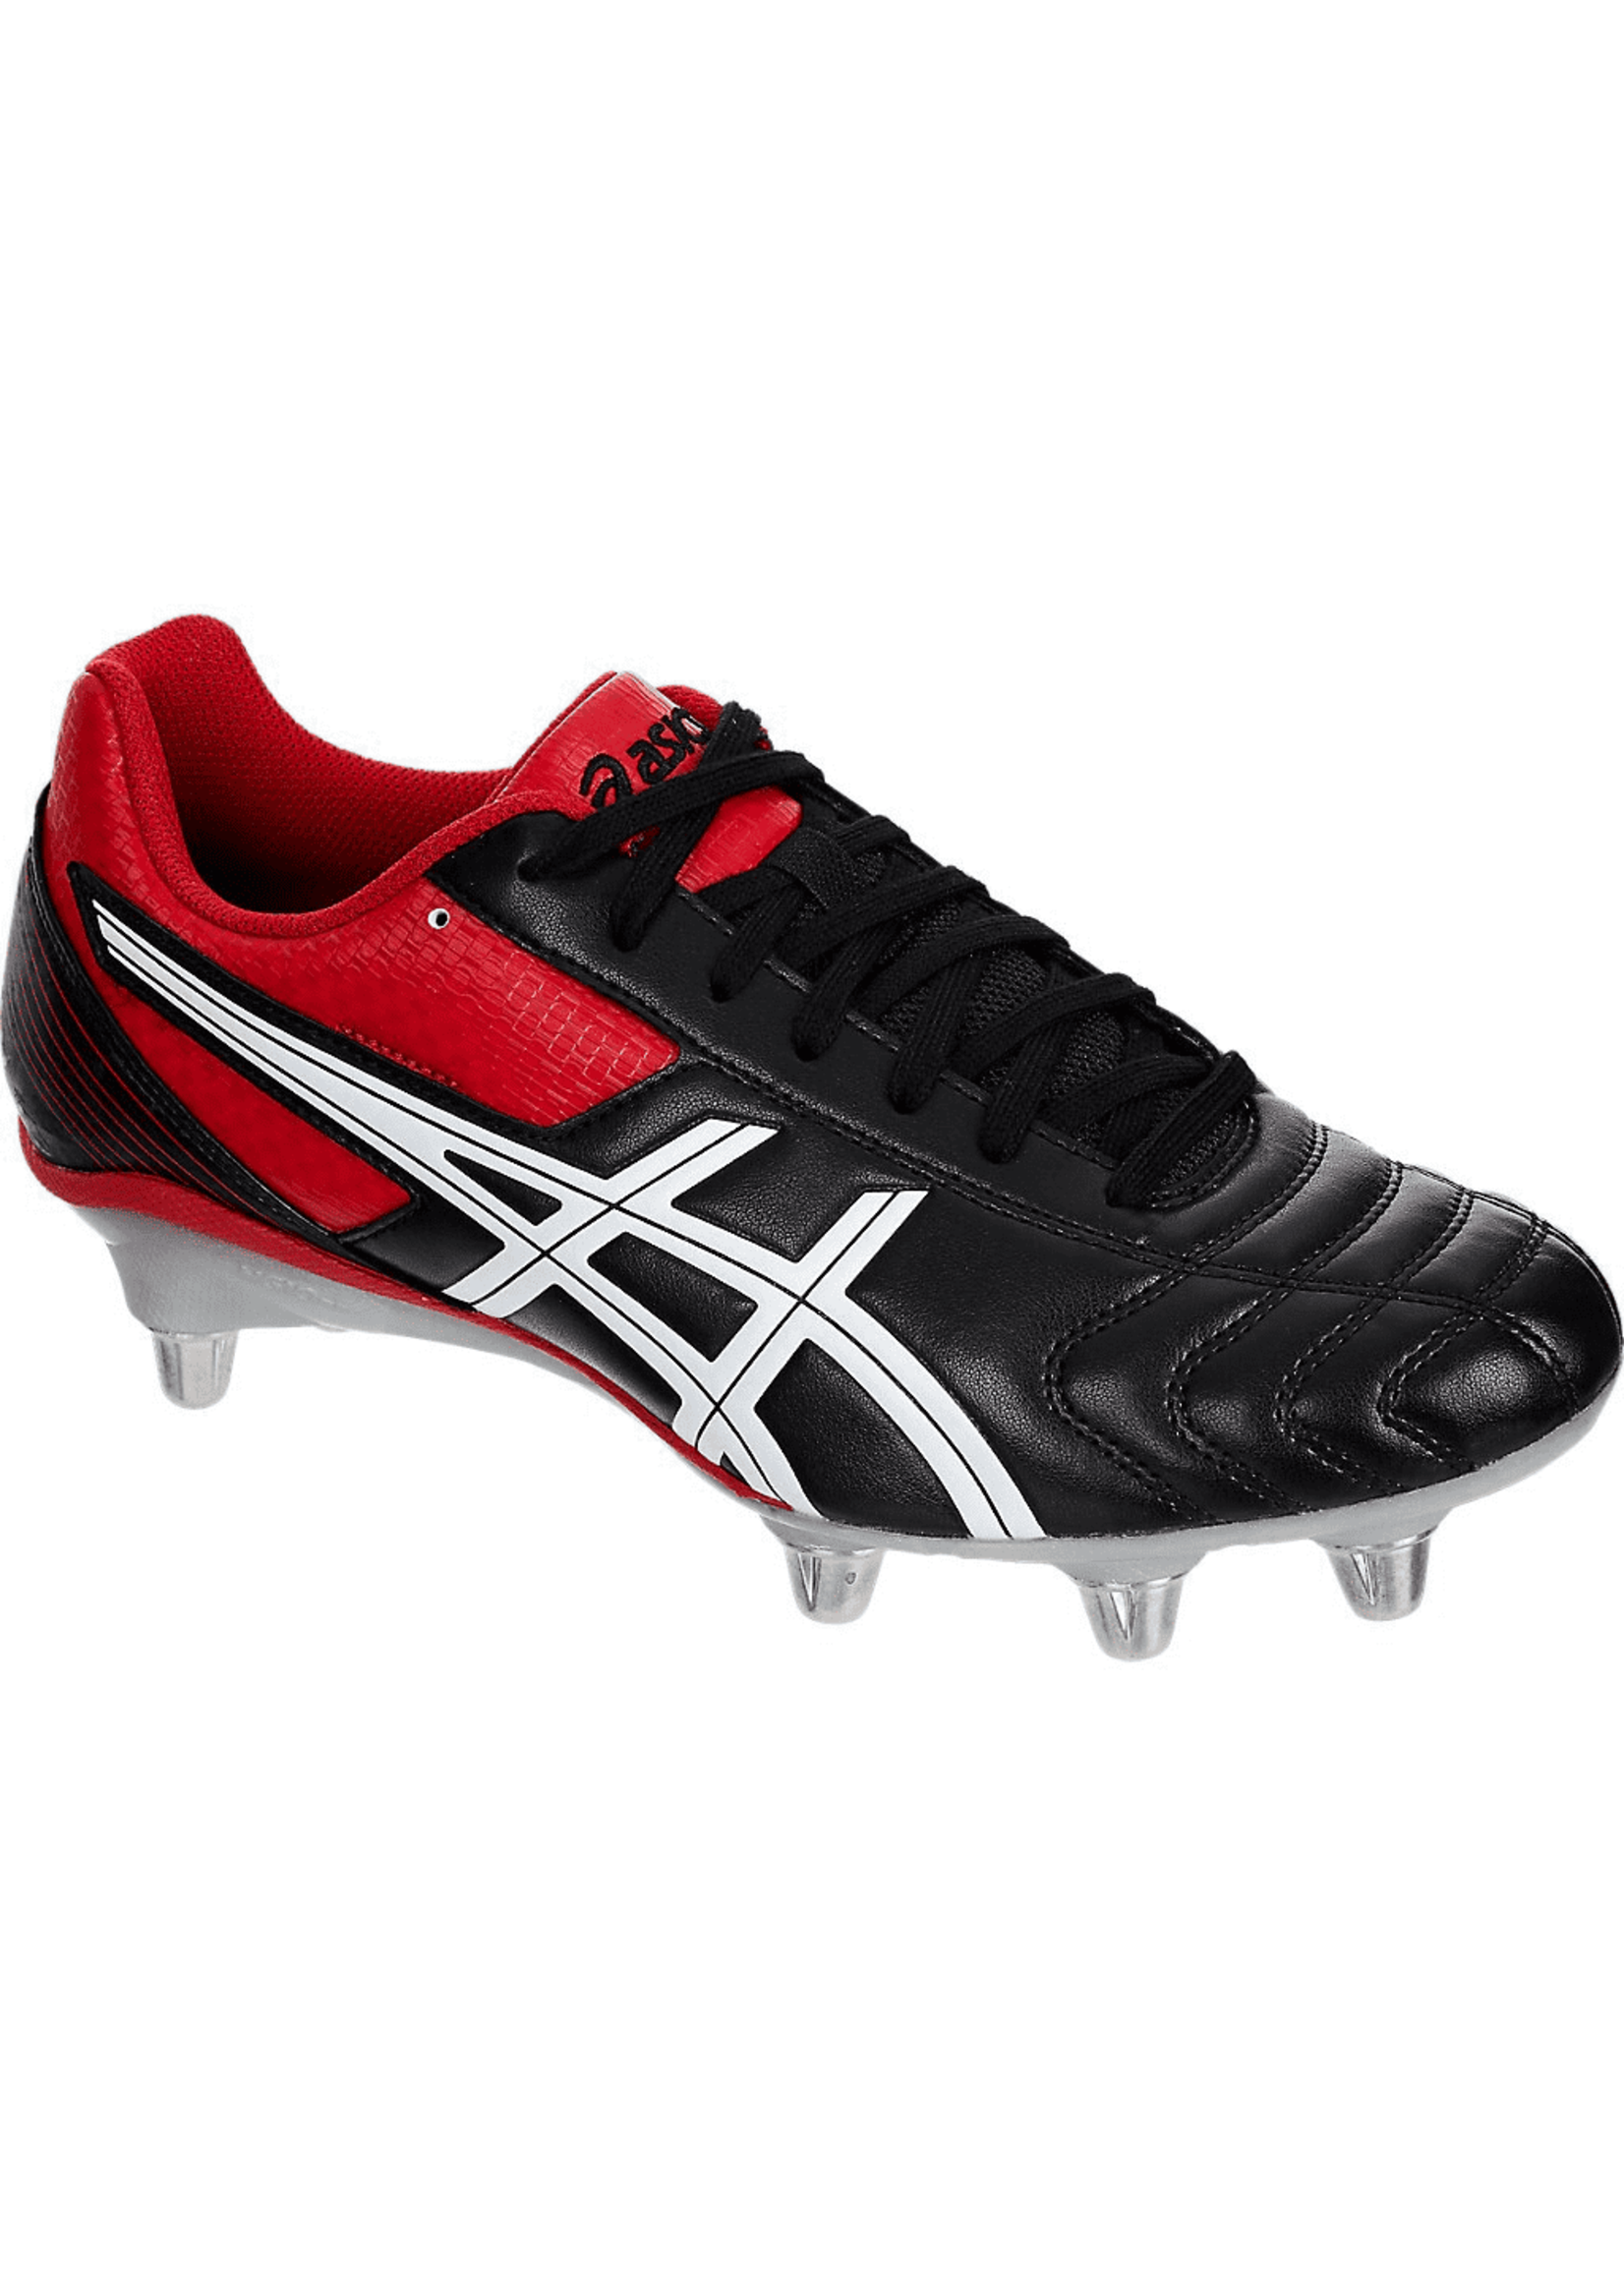 Asics Asics Leathal Tackle Mens Rugby Boots (2020), Black/Racing Red/White